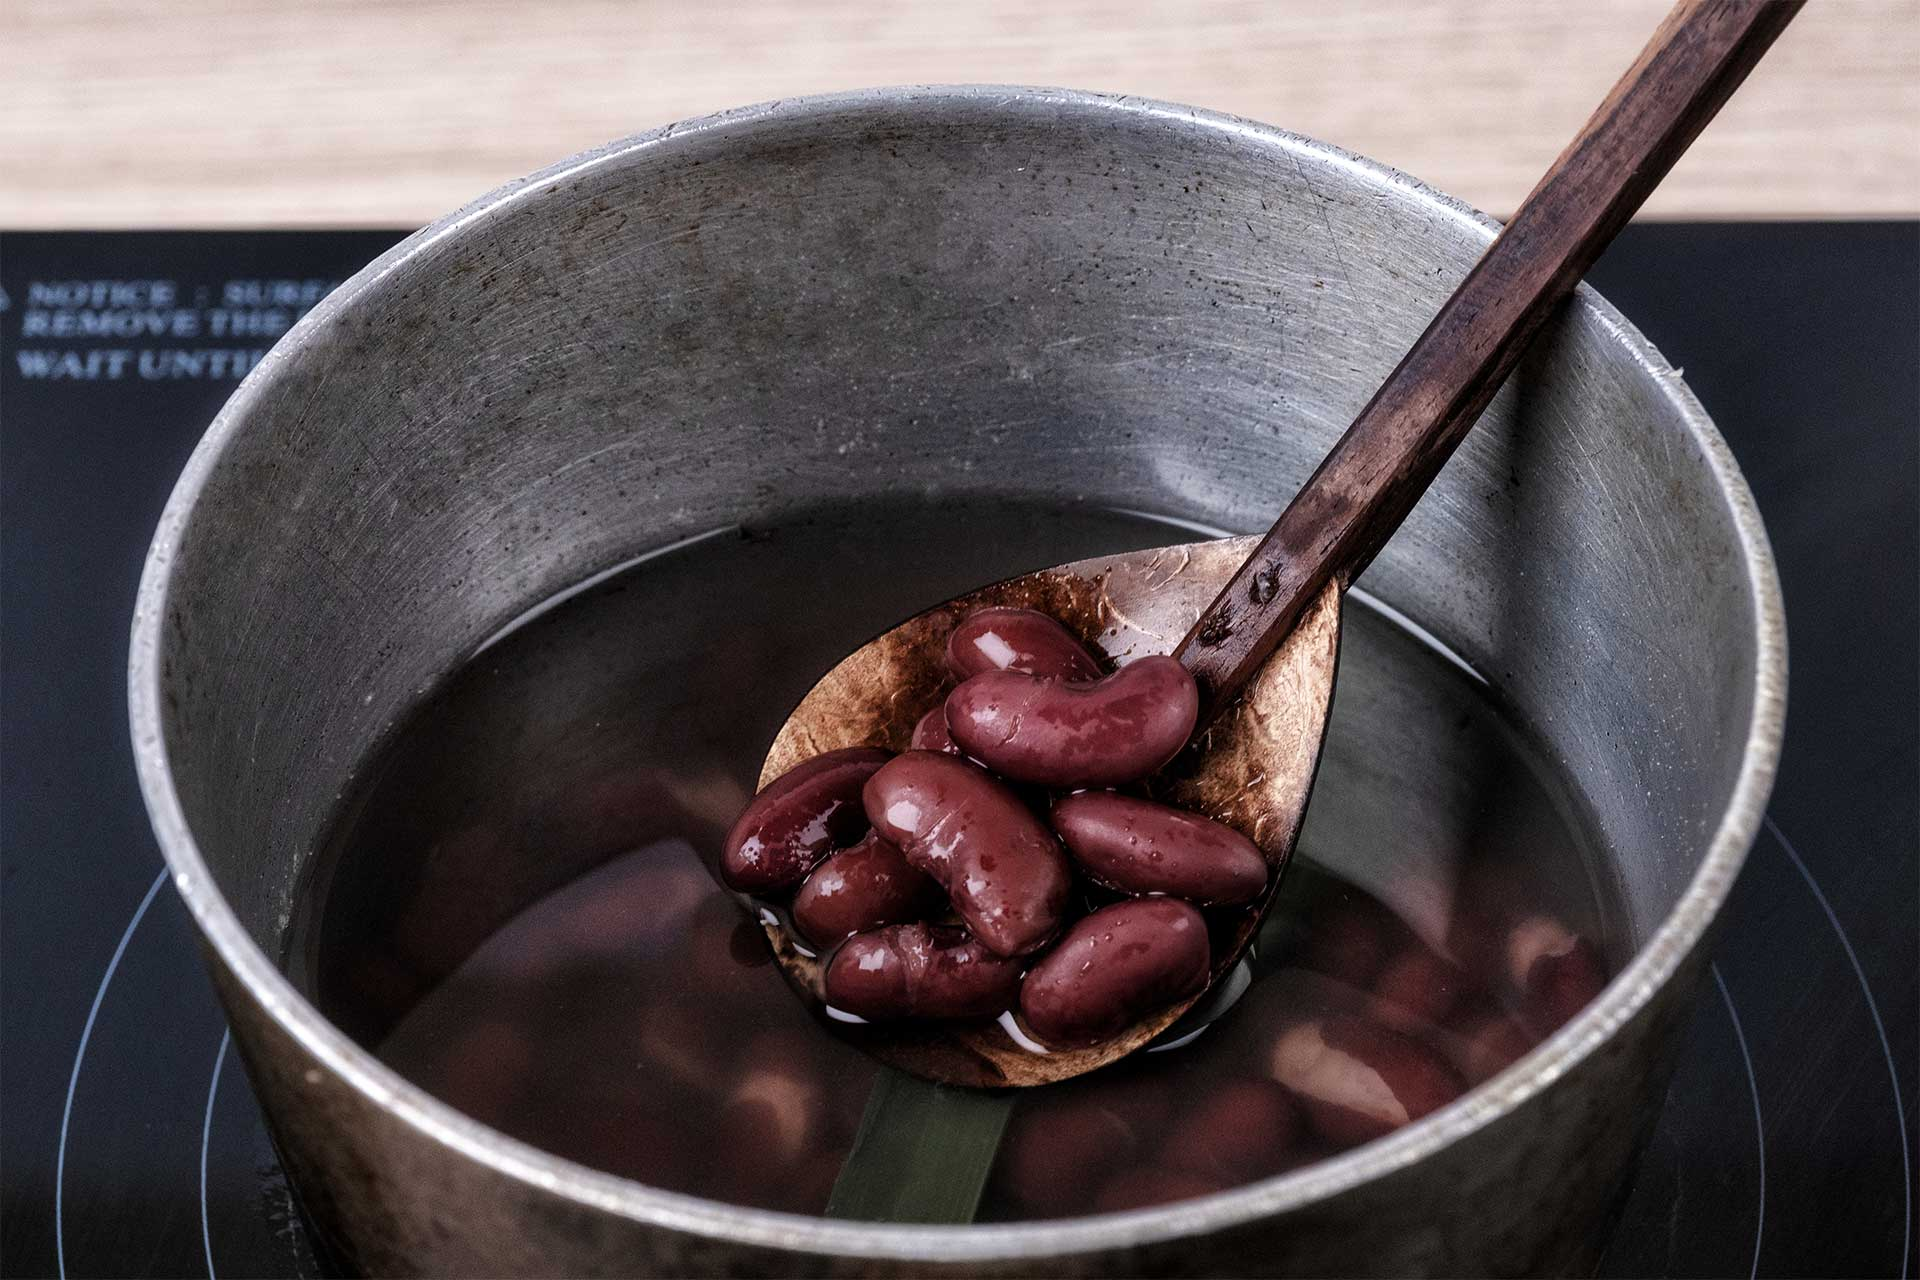 Cook the red beans